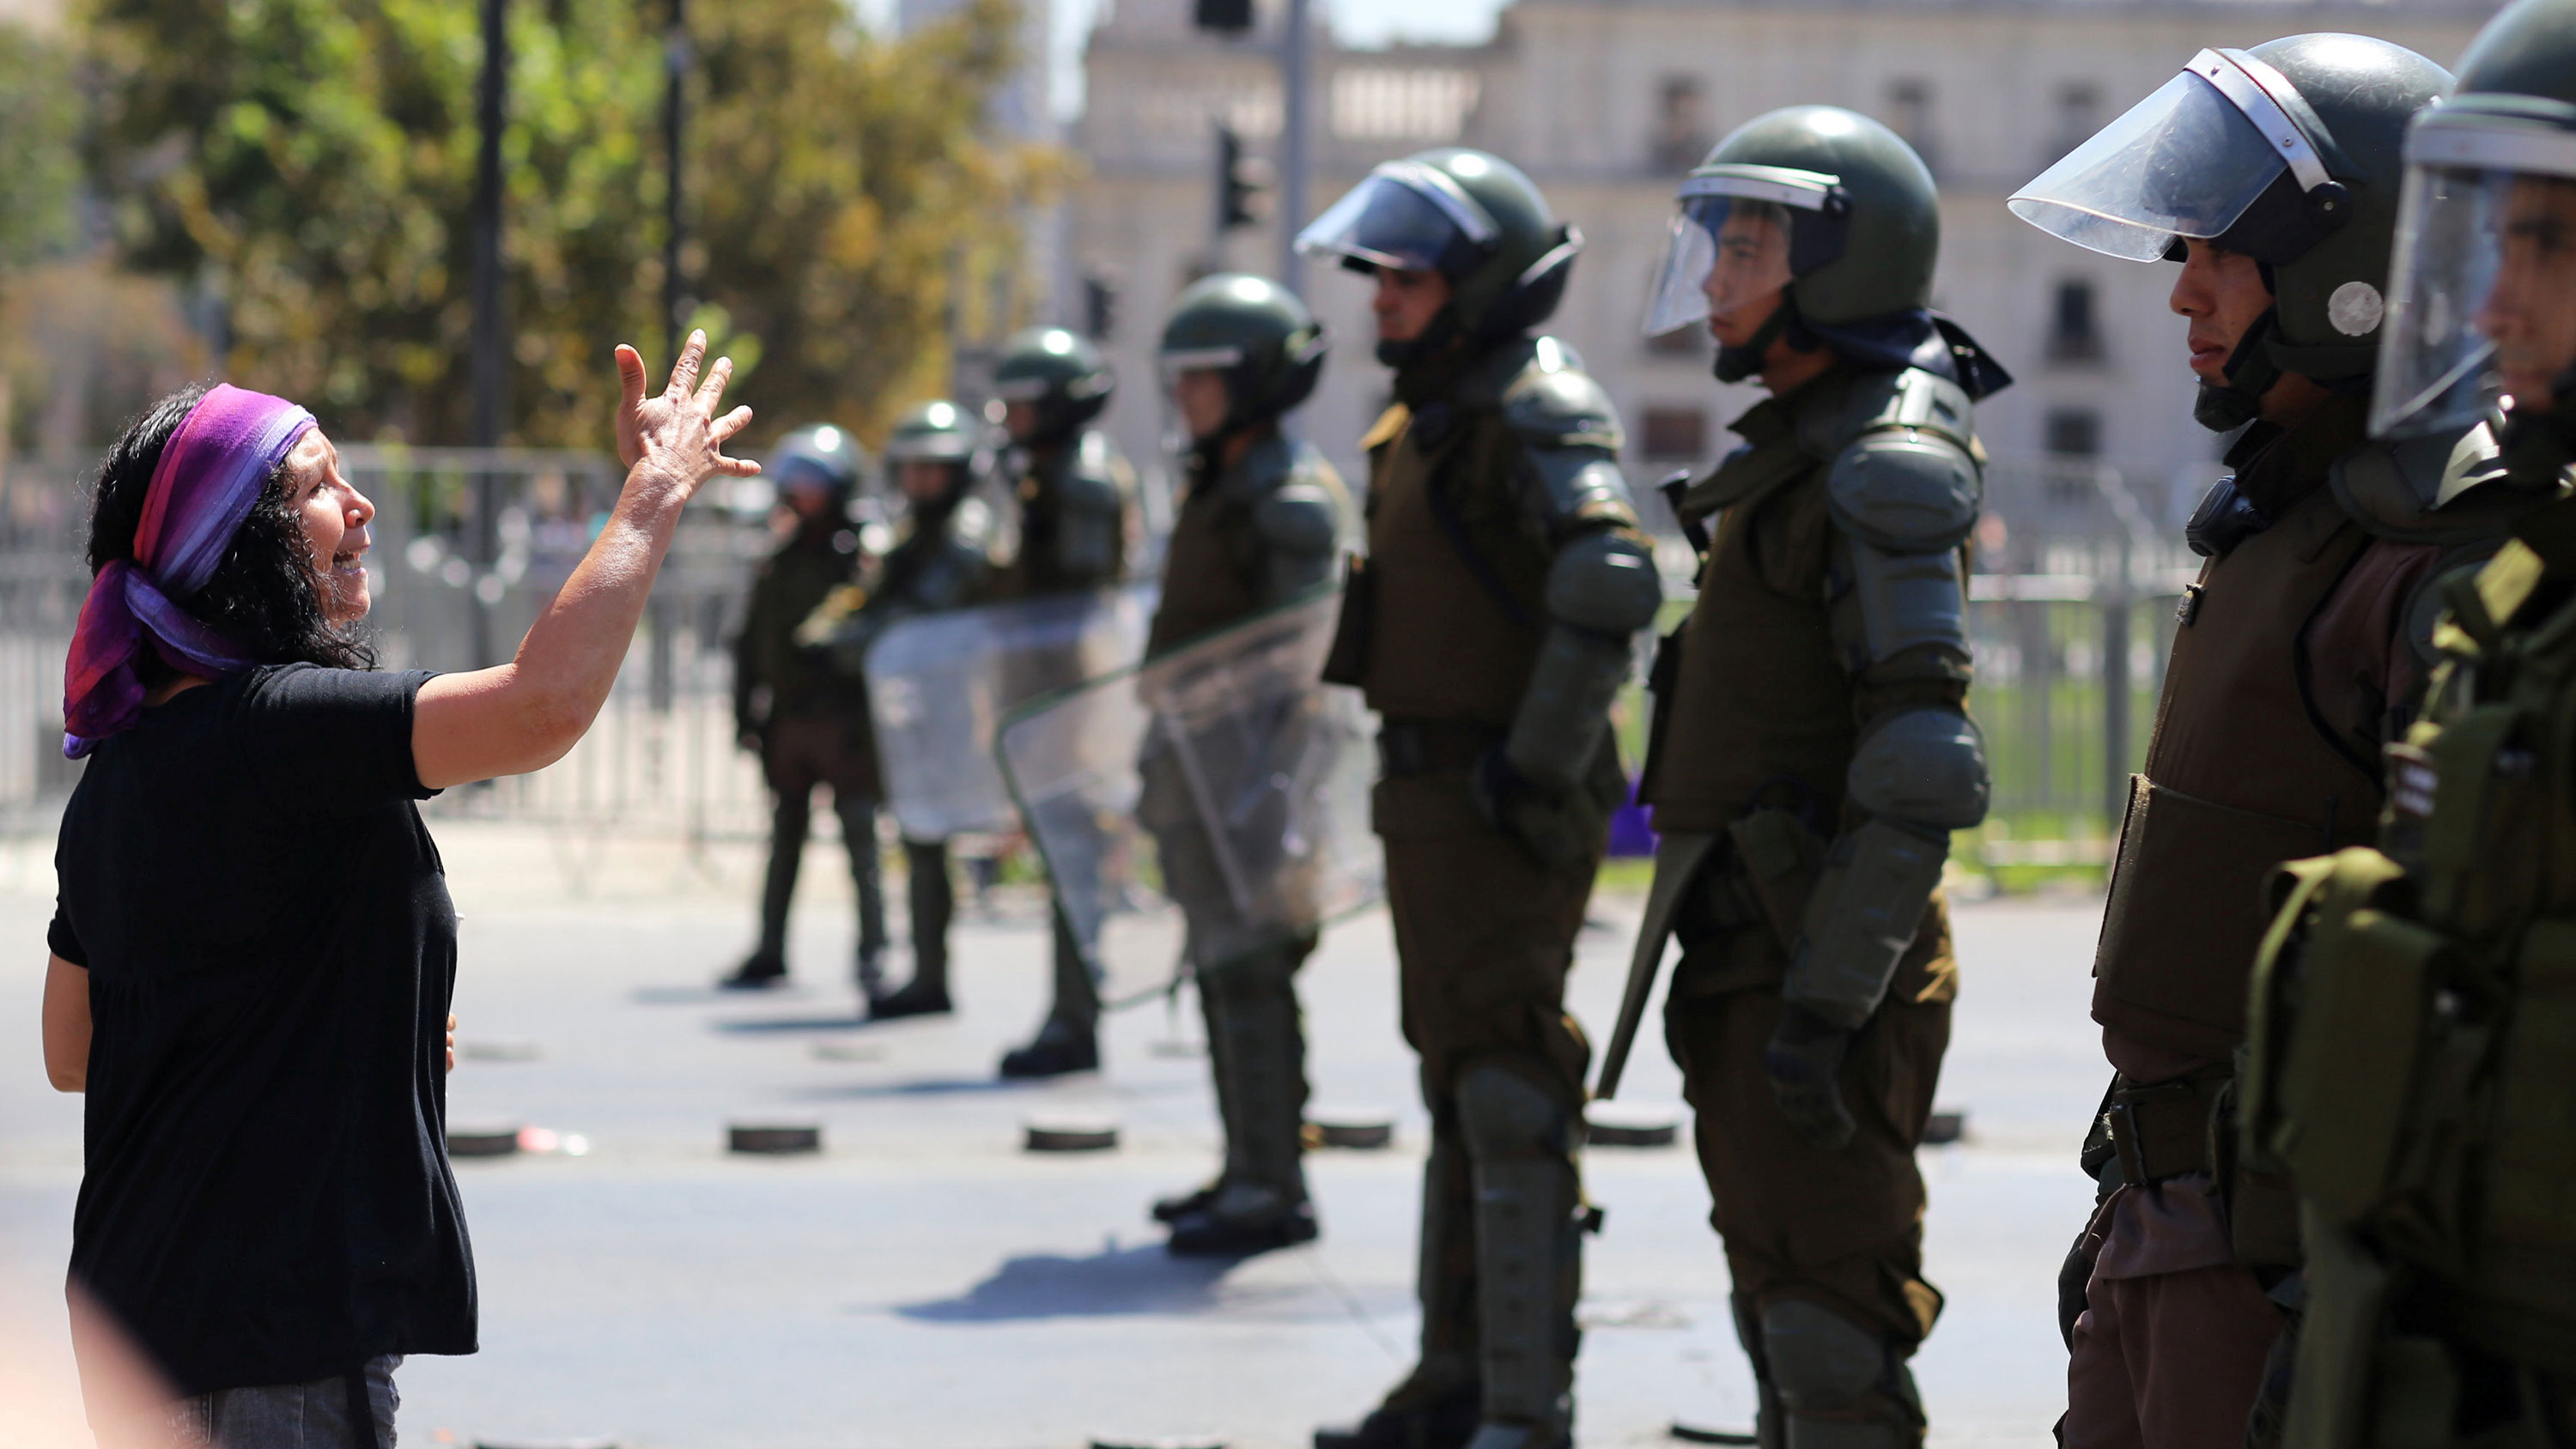 This is a striking photo where a woman wearing a colorful bandana is shouting at a line of police wearing riot gear and gesturing with her hand.